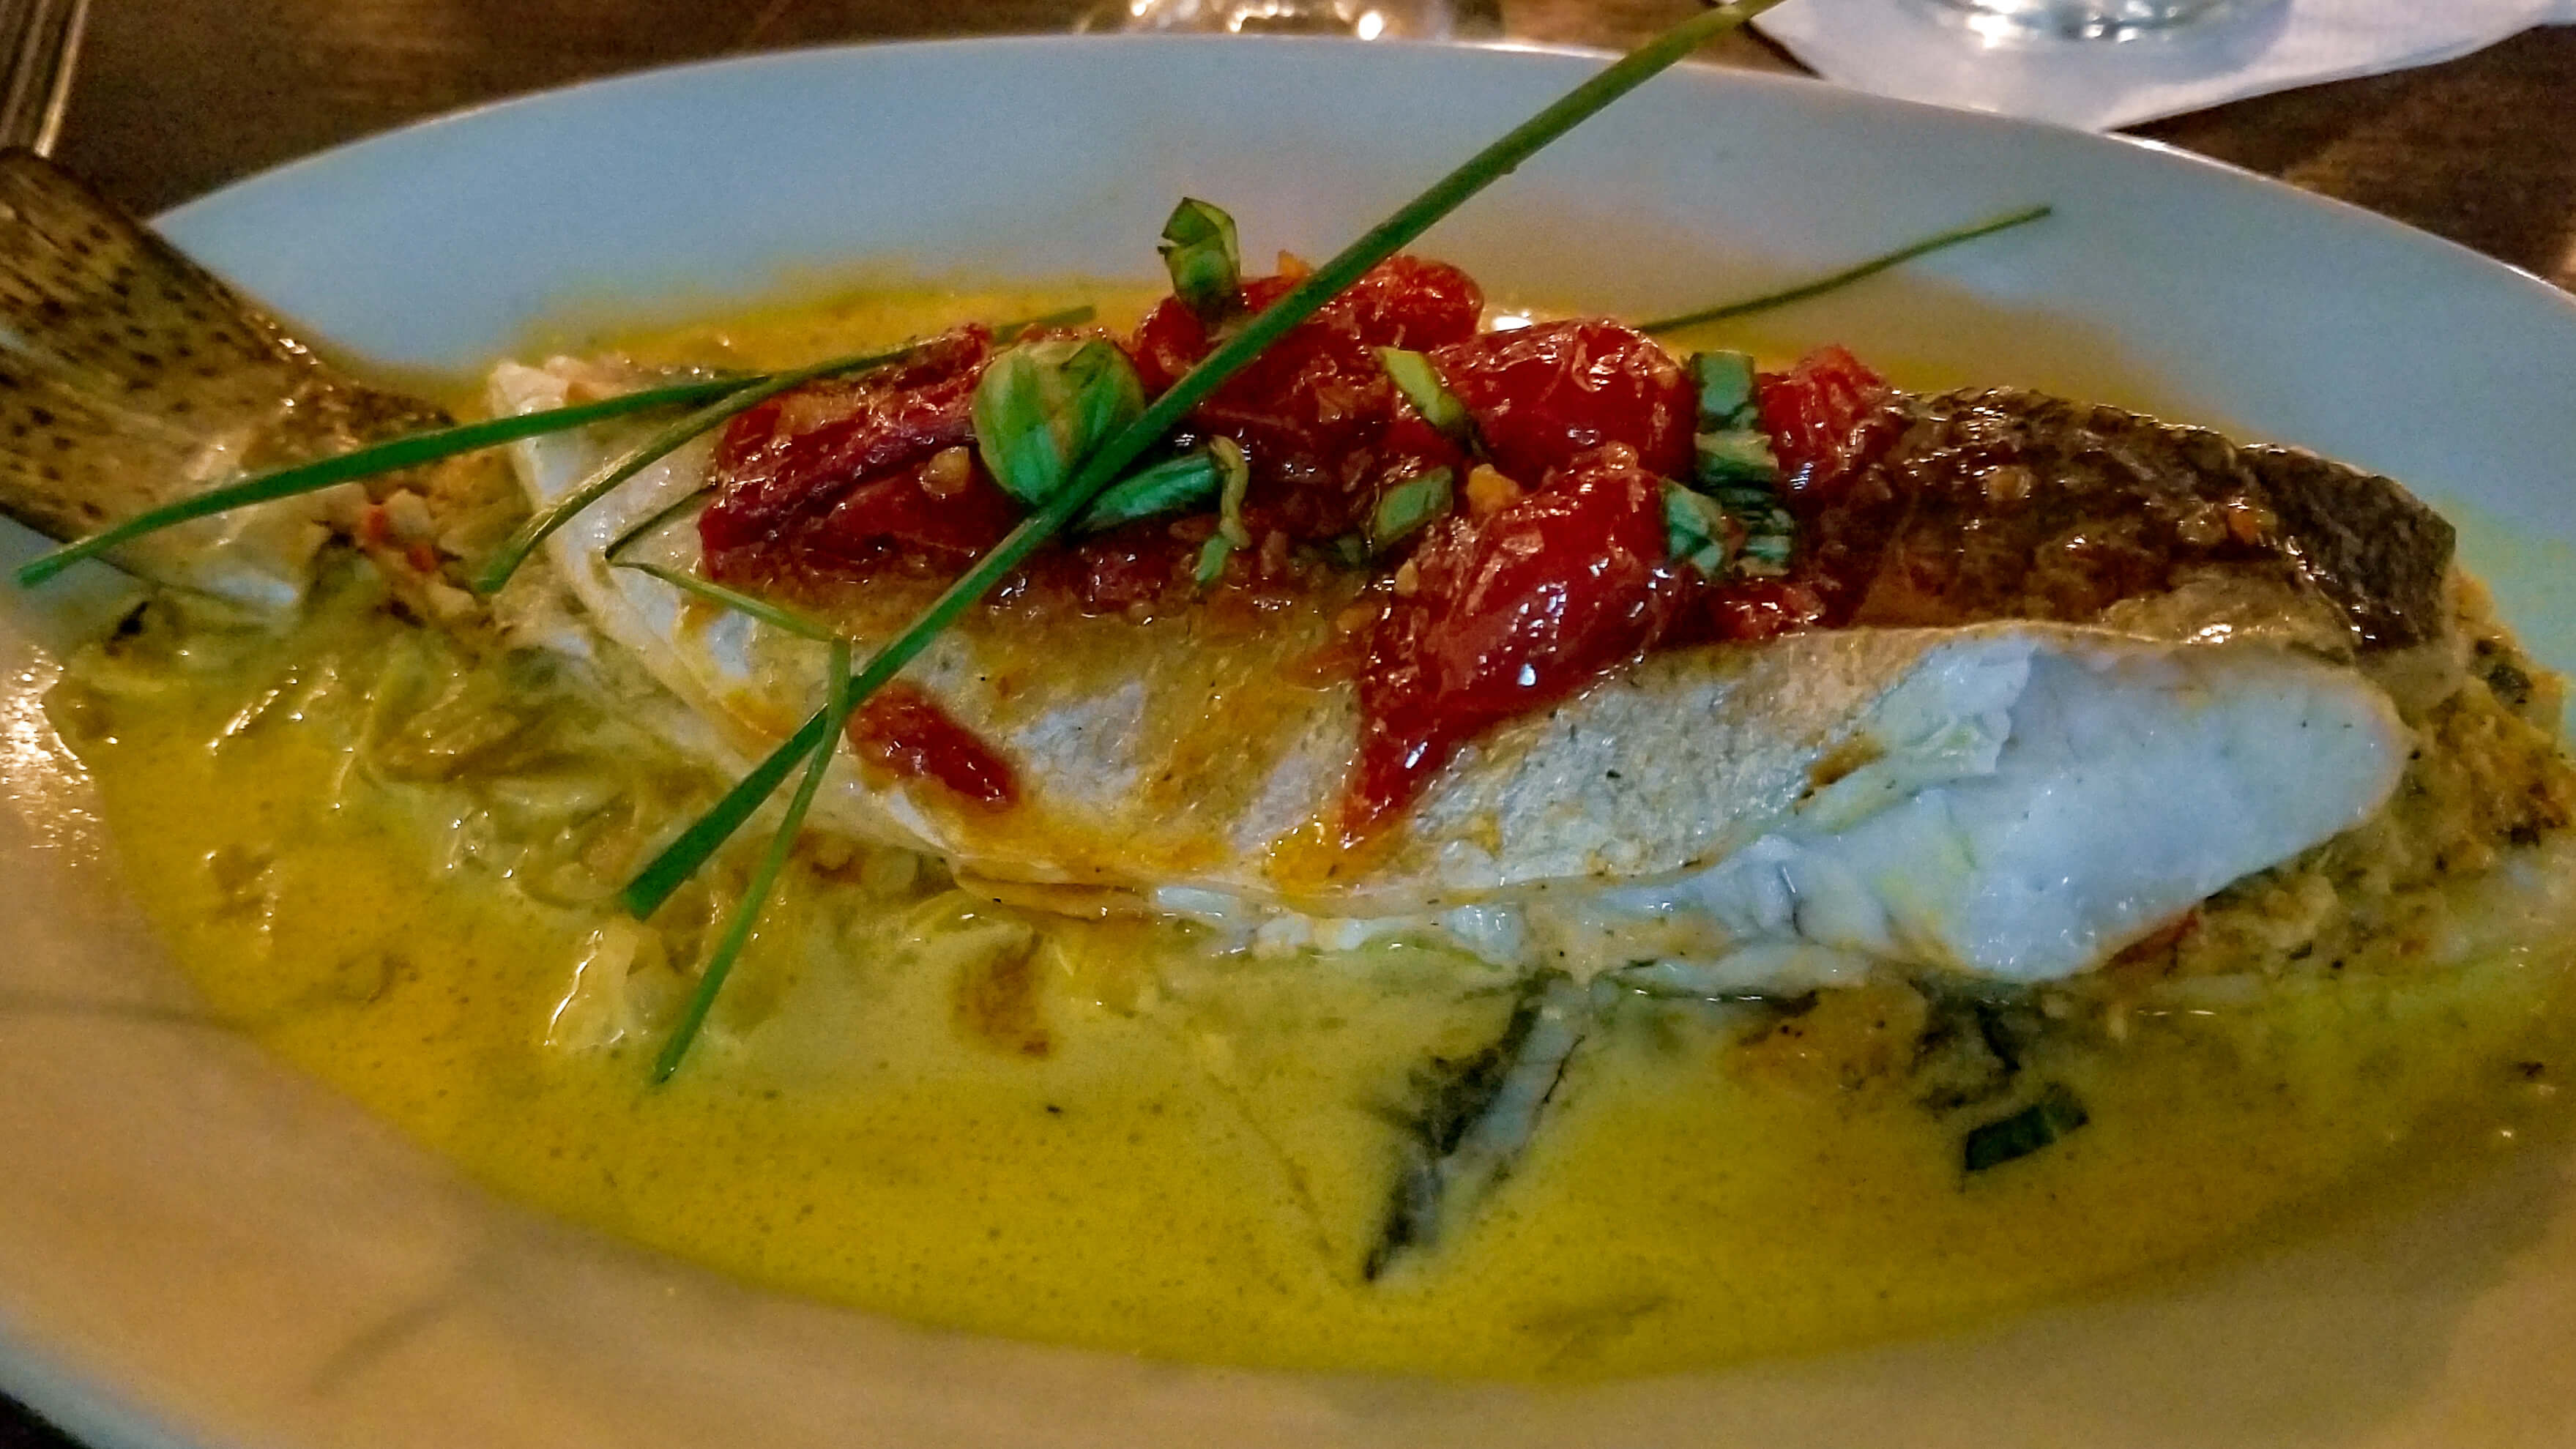 Whole fish in curry sauce at gabrielle's new orleans